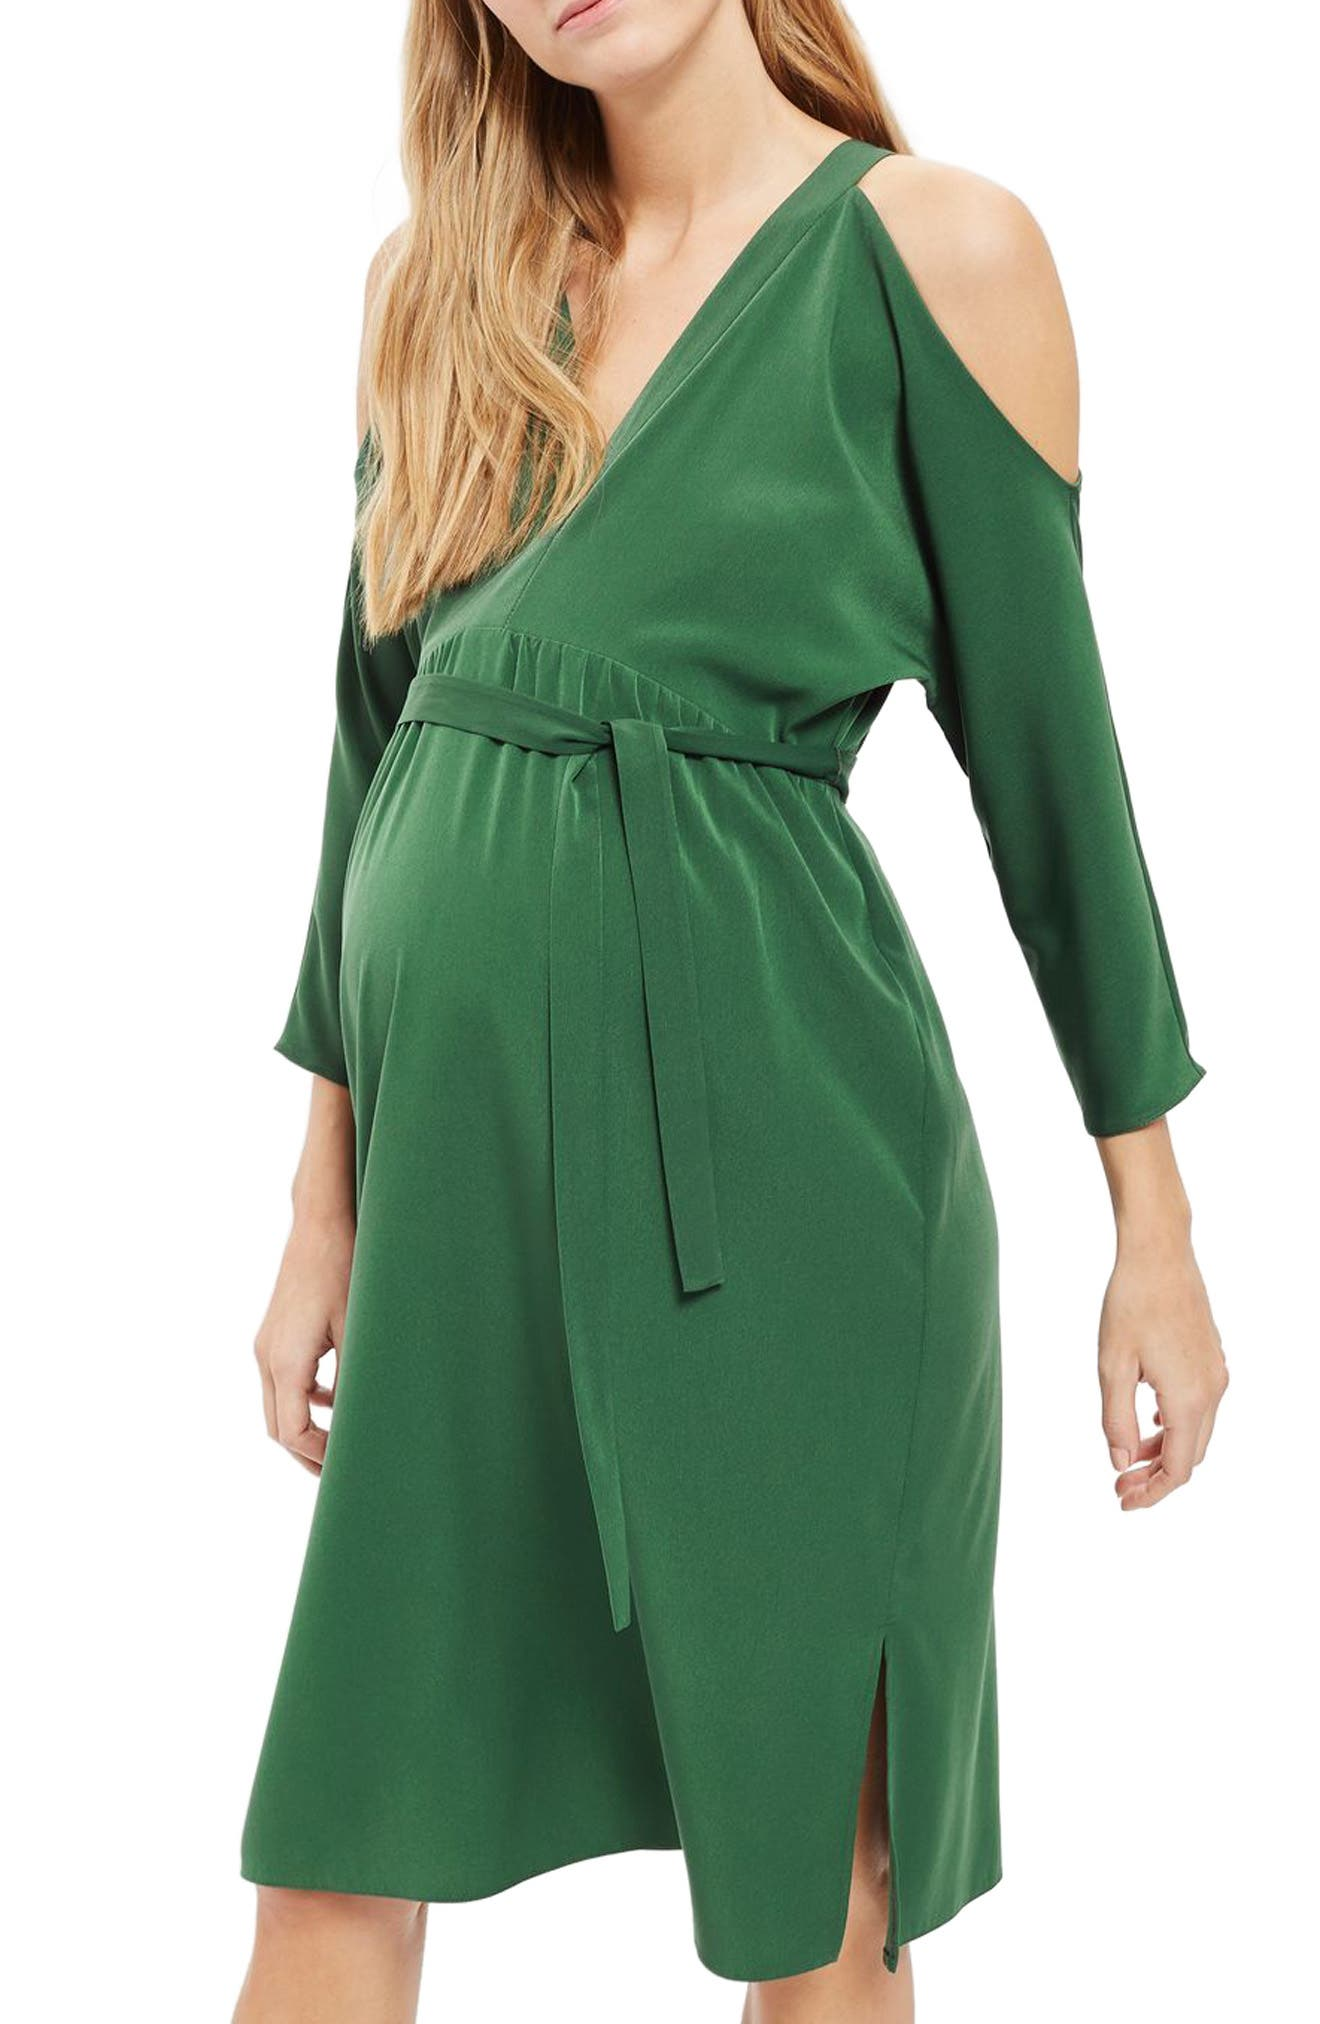 Topshop Cutout Belted Maternity Dress